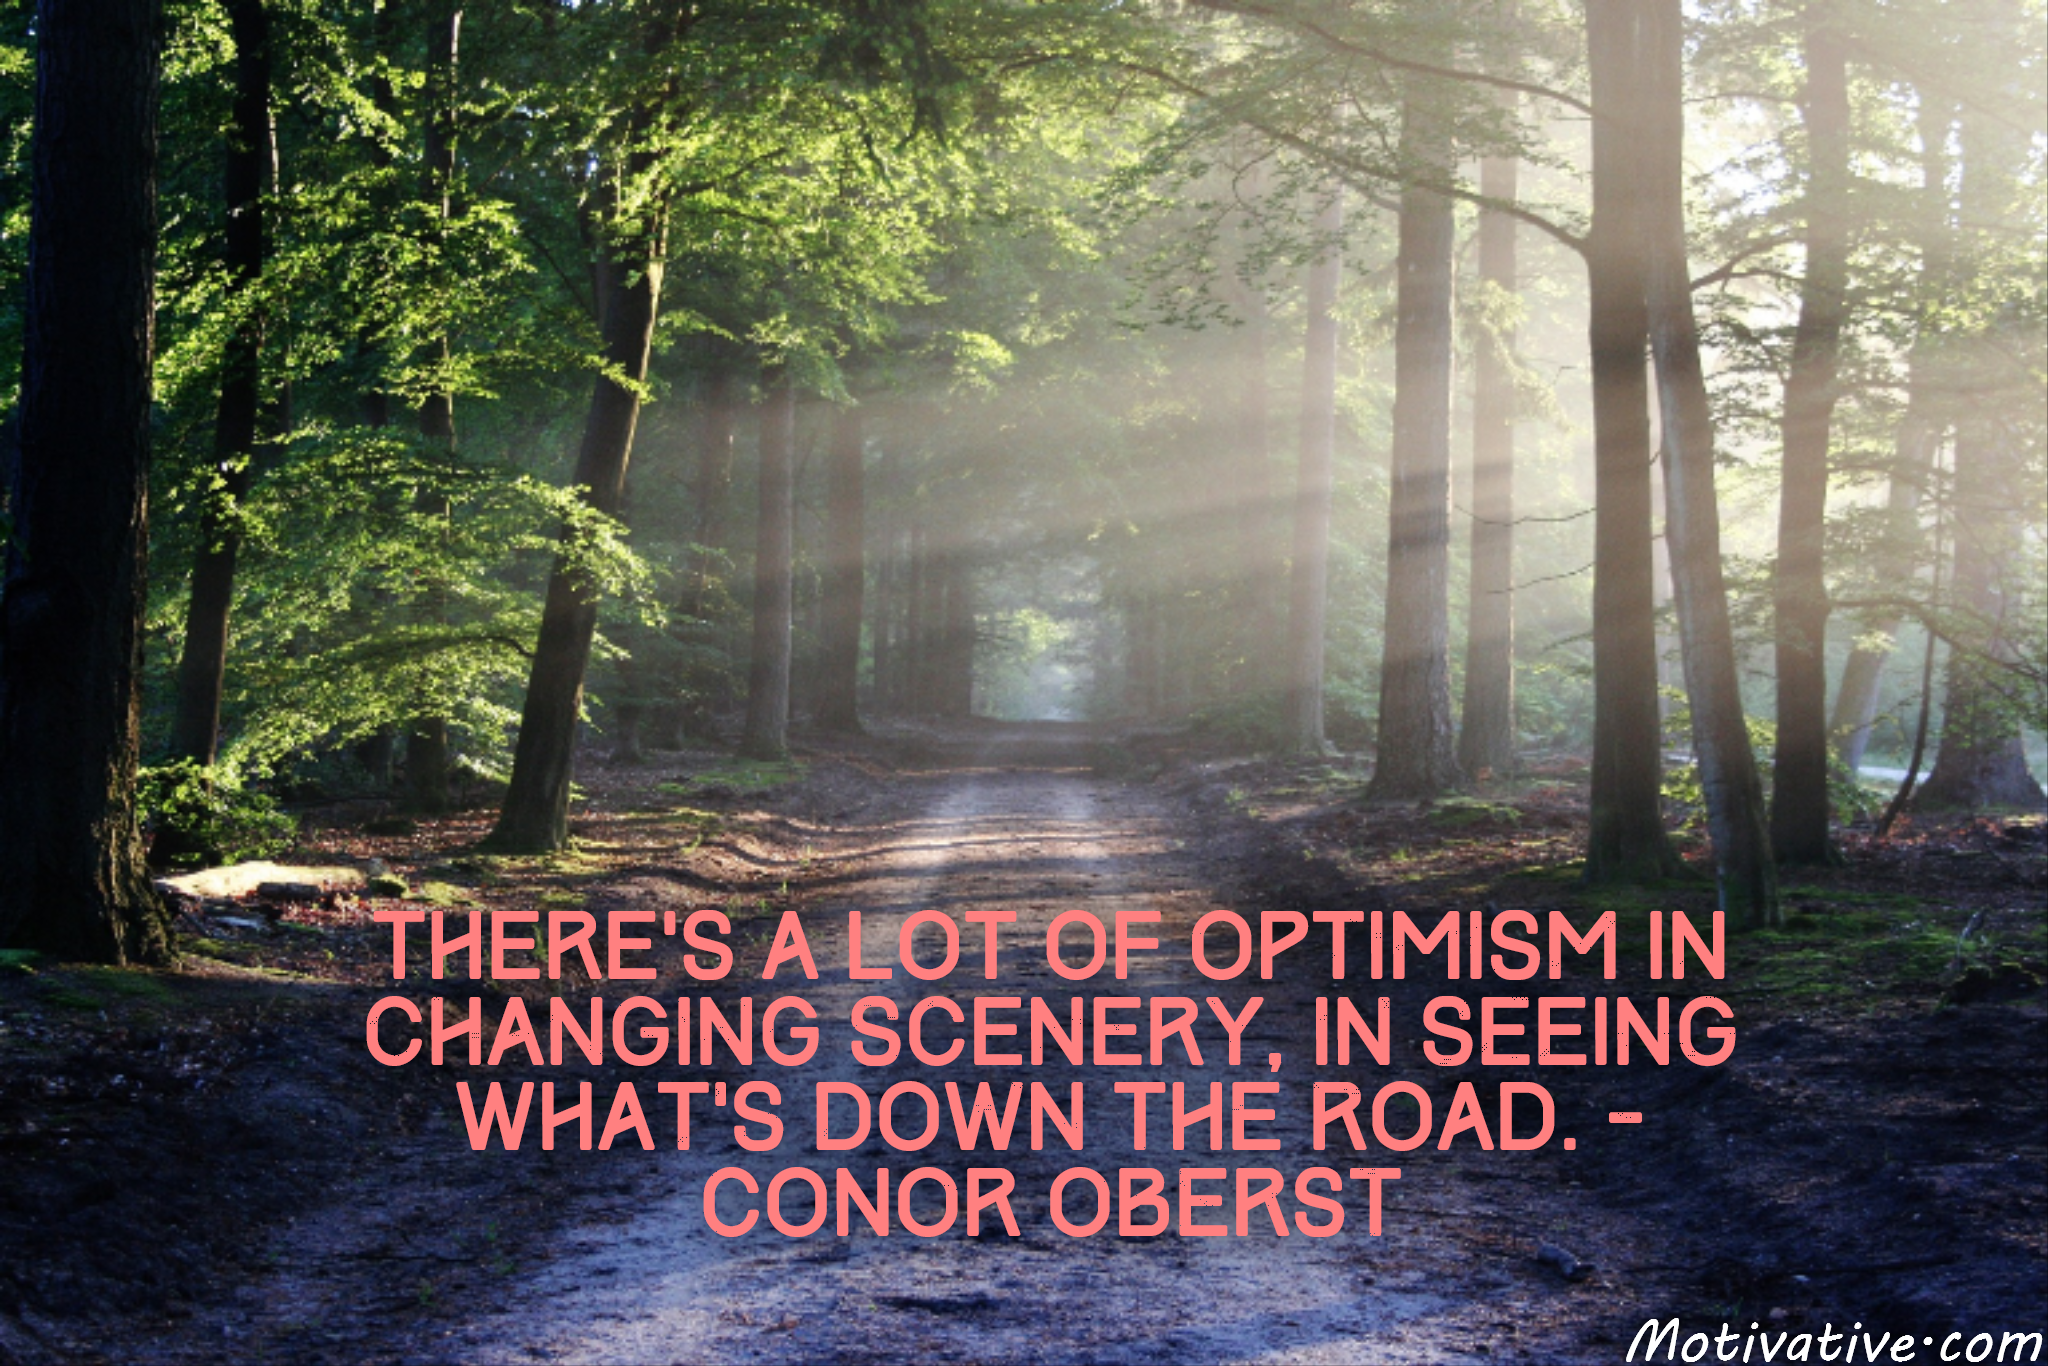 There's a lot of optimism in changing scenery, in seeing what's down the road. – Conor Oberst